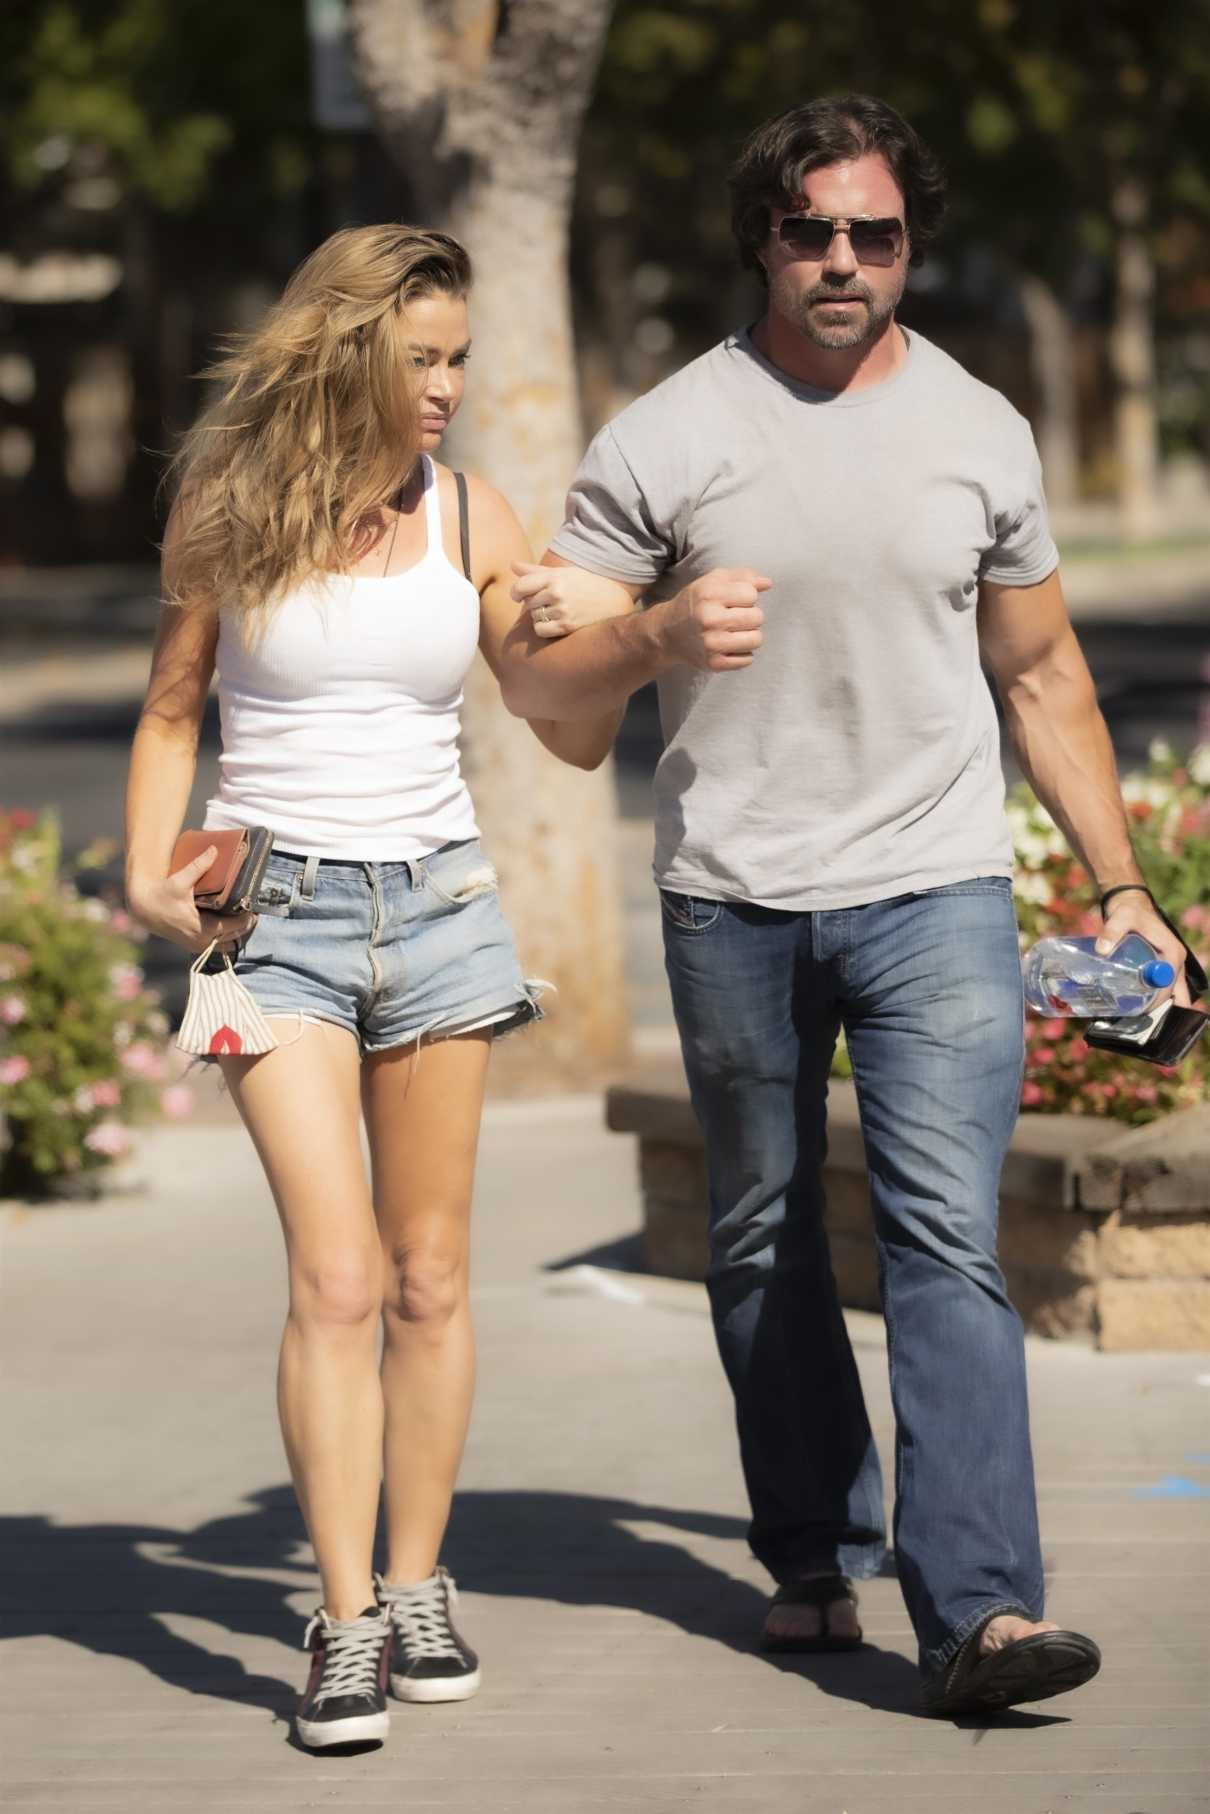 Denise Richards in a White Top